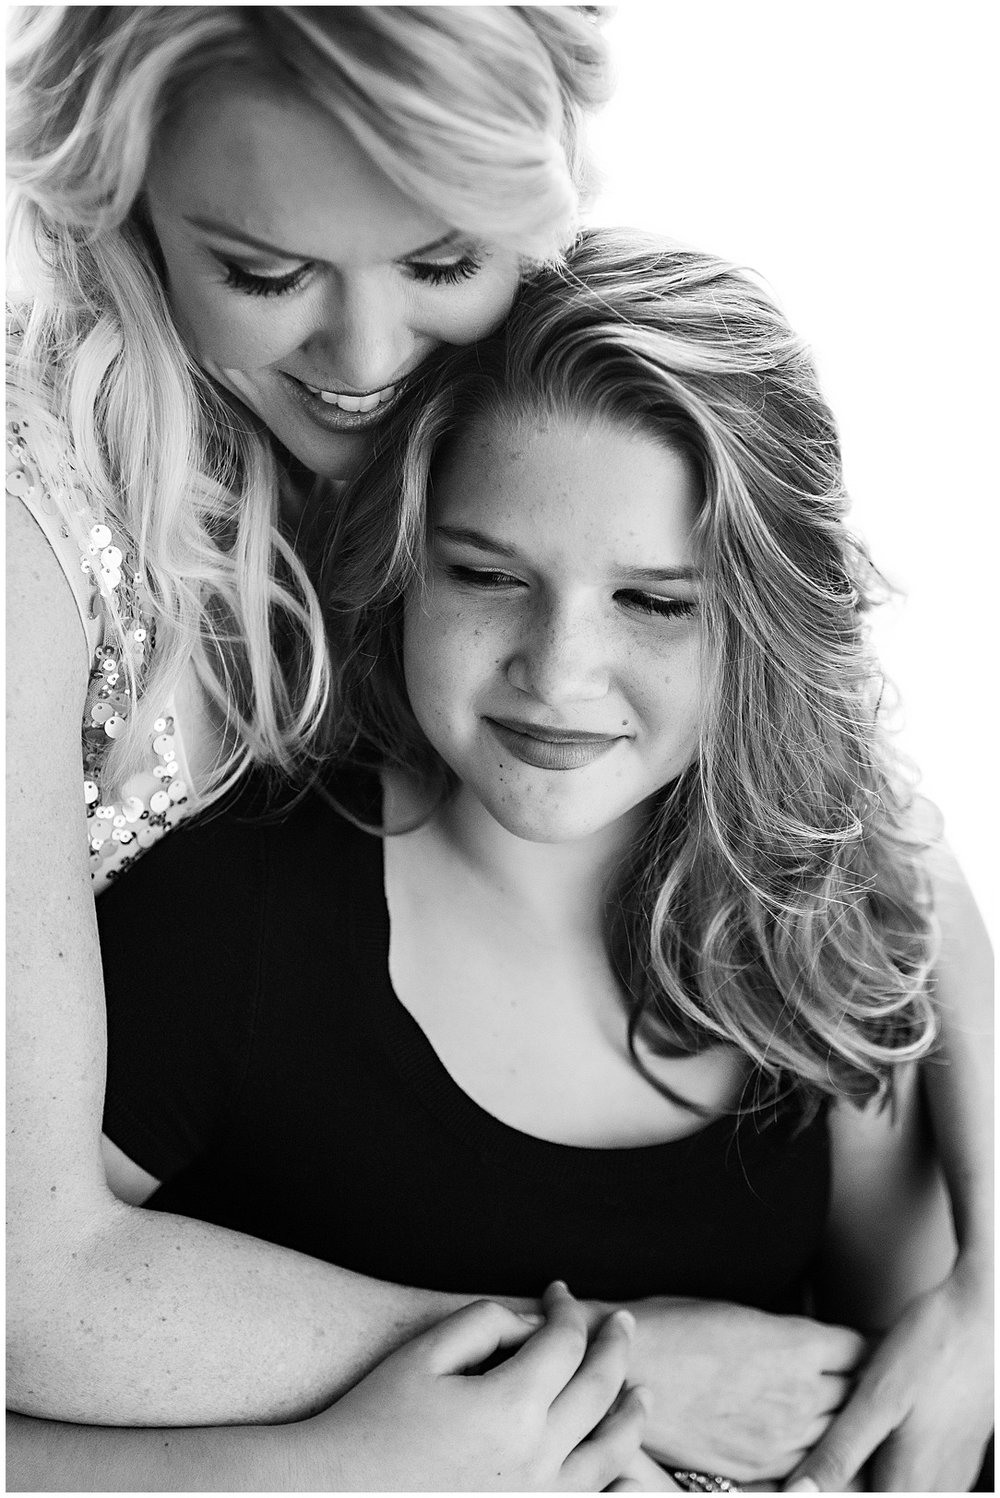 Tessa_marie_photography_family_portrait_photographer_mother_daughter_family_sessions_timeless_elegance_Vogue_magazine_style_portraits_contemporary_portraits_0105.jpg